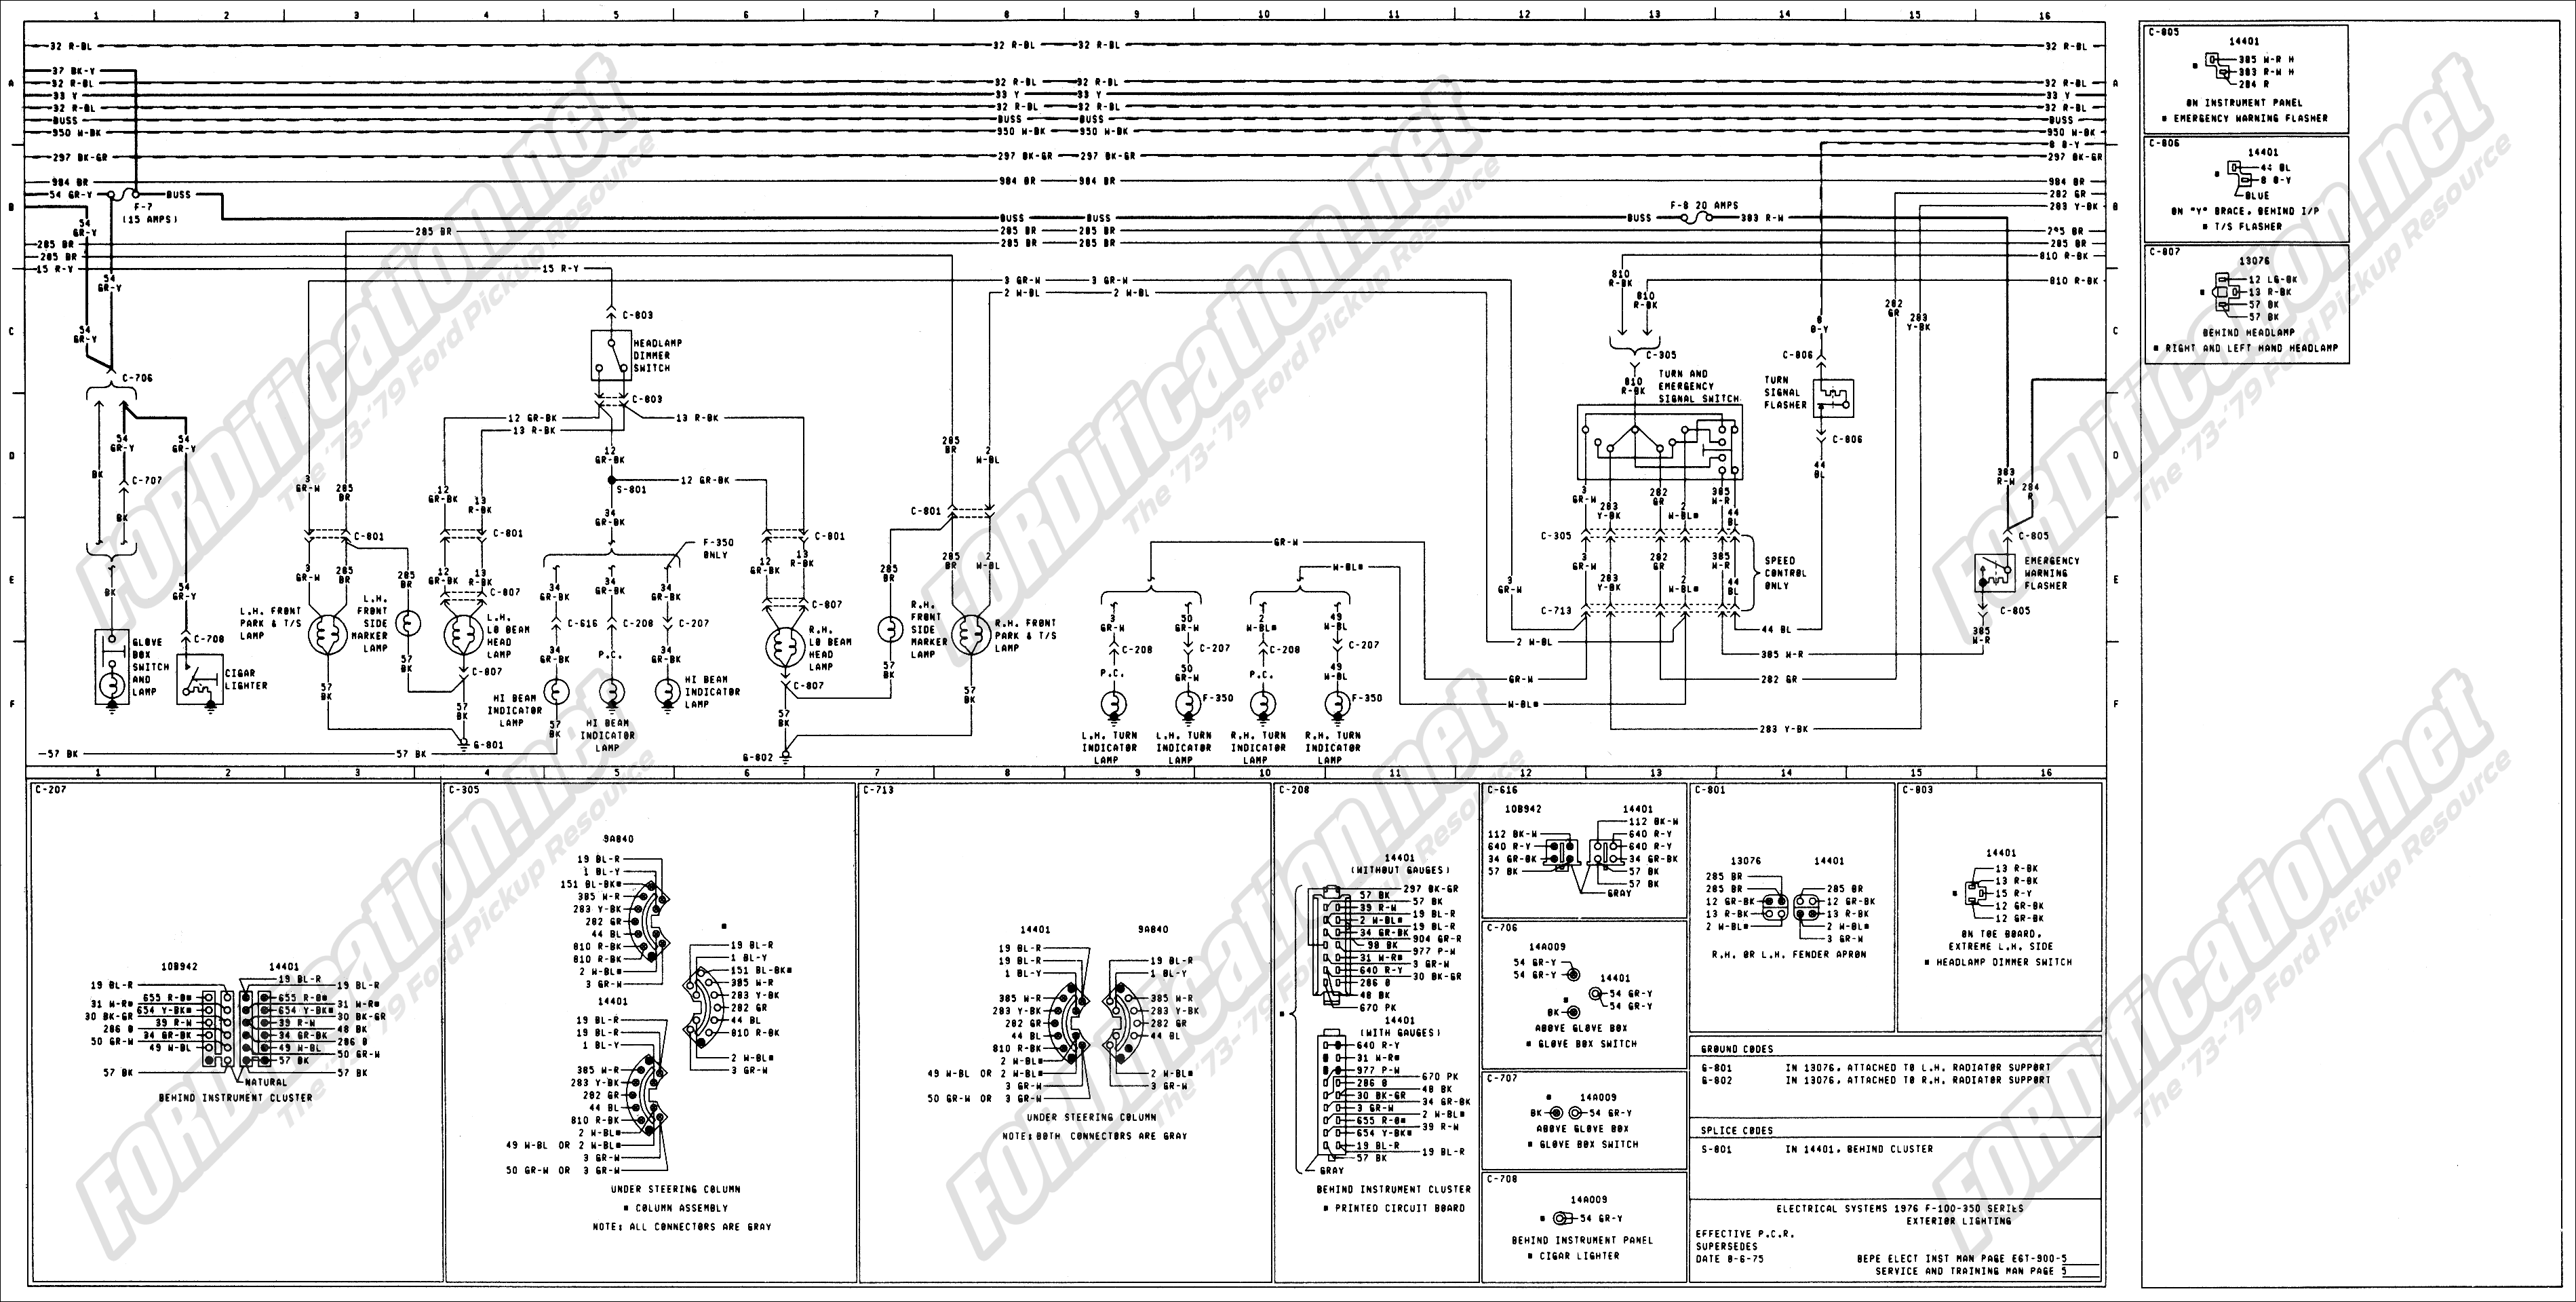 1973-1979 Ford Truck Wiring Diagrams & Schematics - FORDification.net | Ford F150 Wiring Chart |  | FORDification.net